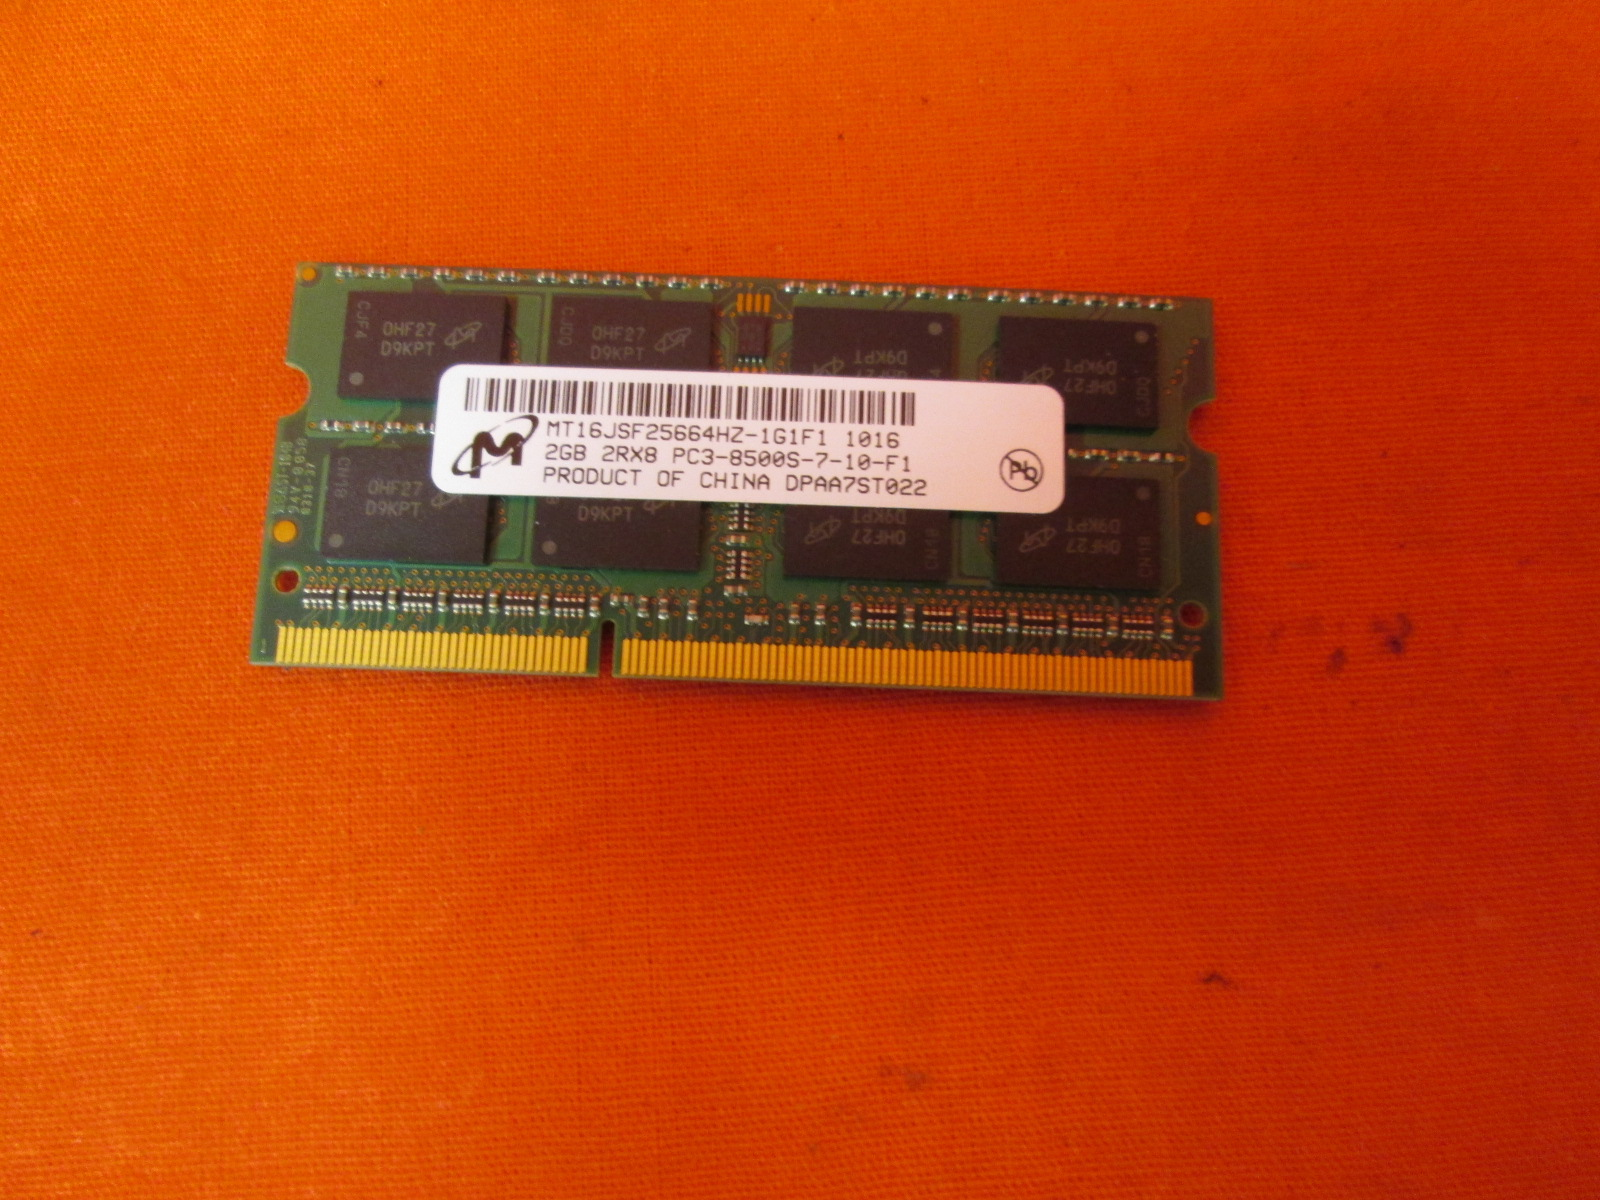 Micron 2GB DDR3 PC-8500 1066MHZ 204PIN CL7 Micron Chip MT16JSF25664HZ-